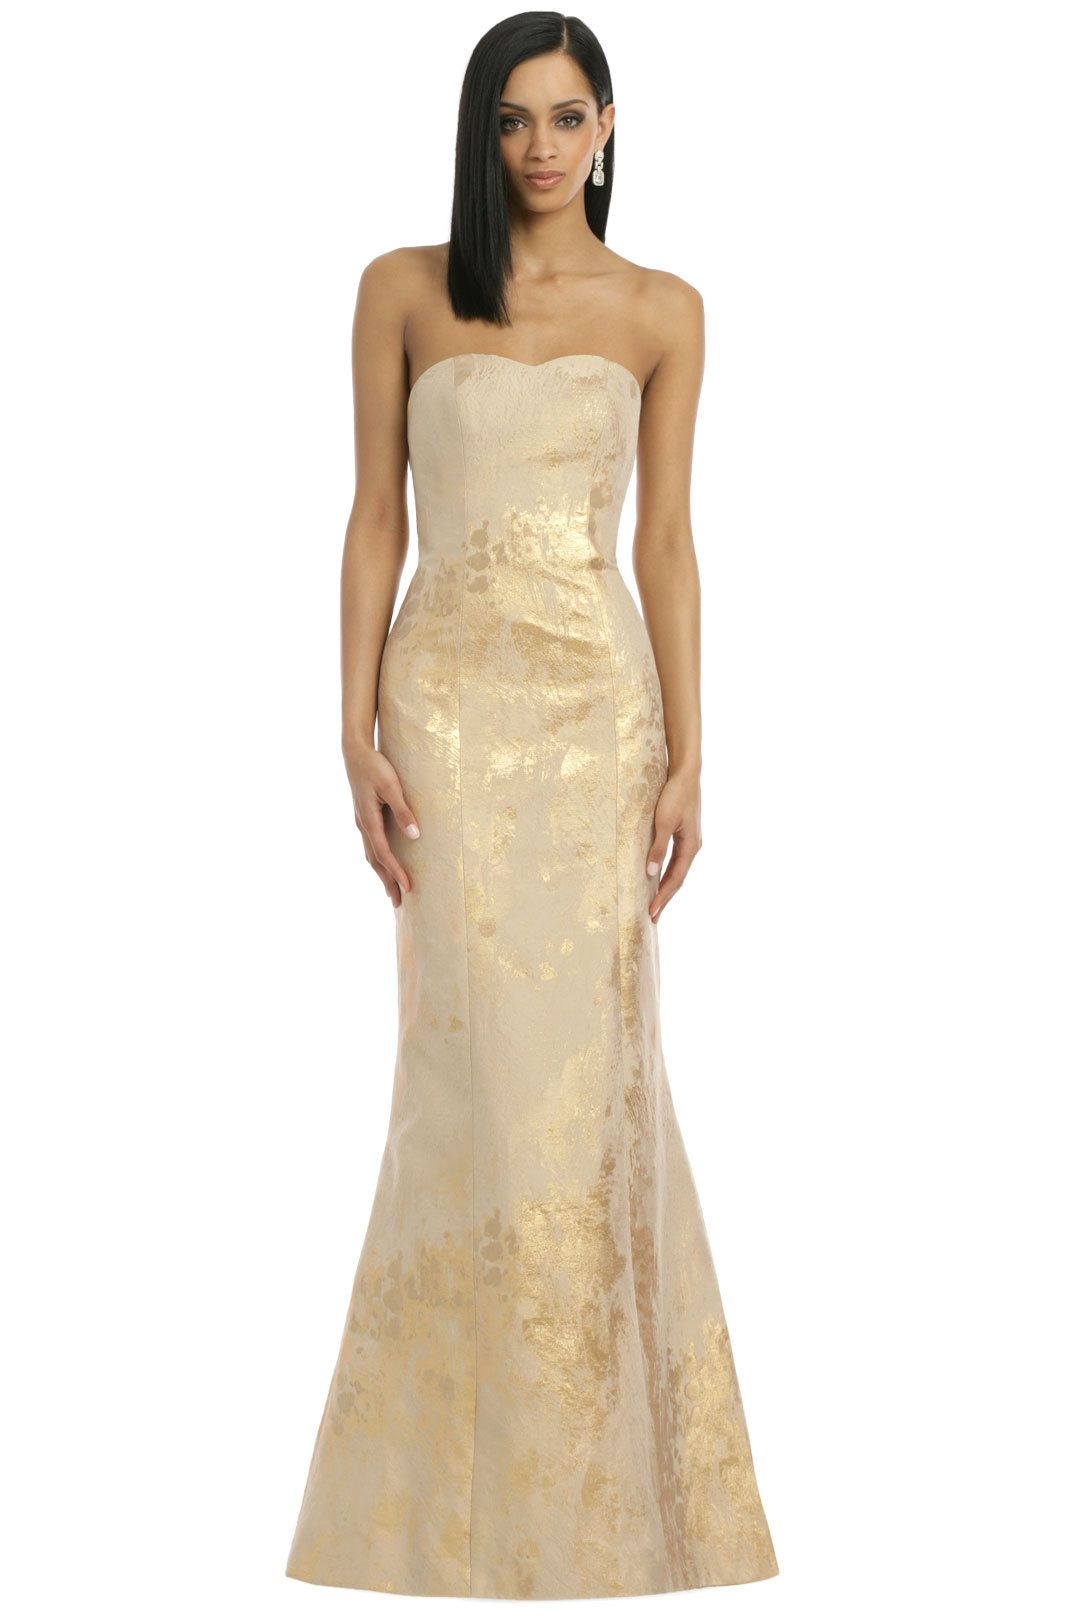 Where can i rent a wedding dress  Gold and champagne flute wedding dress  Making Waves Like the